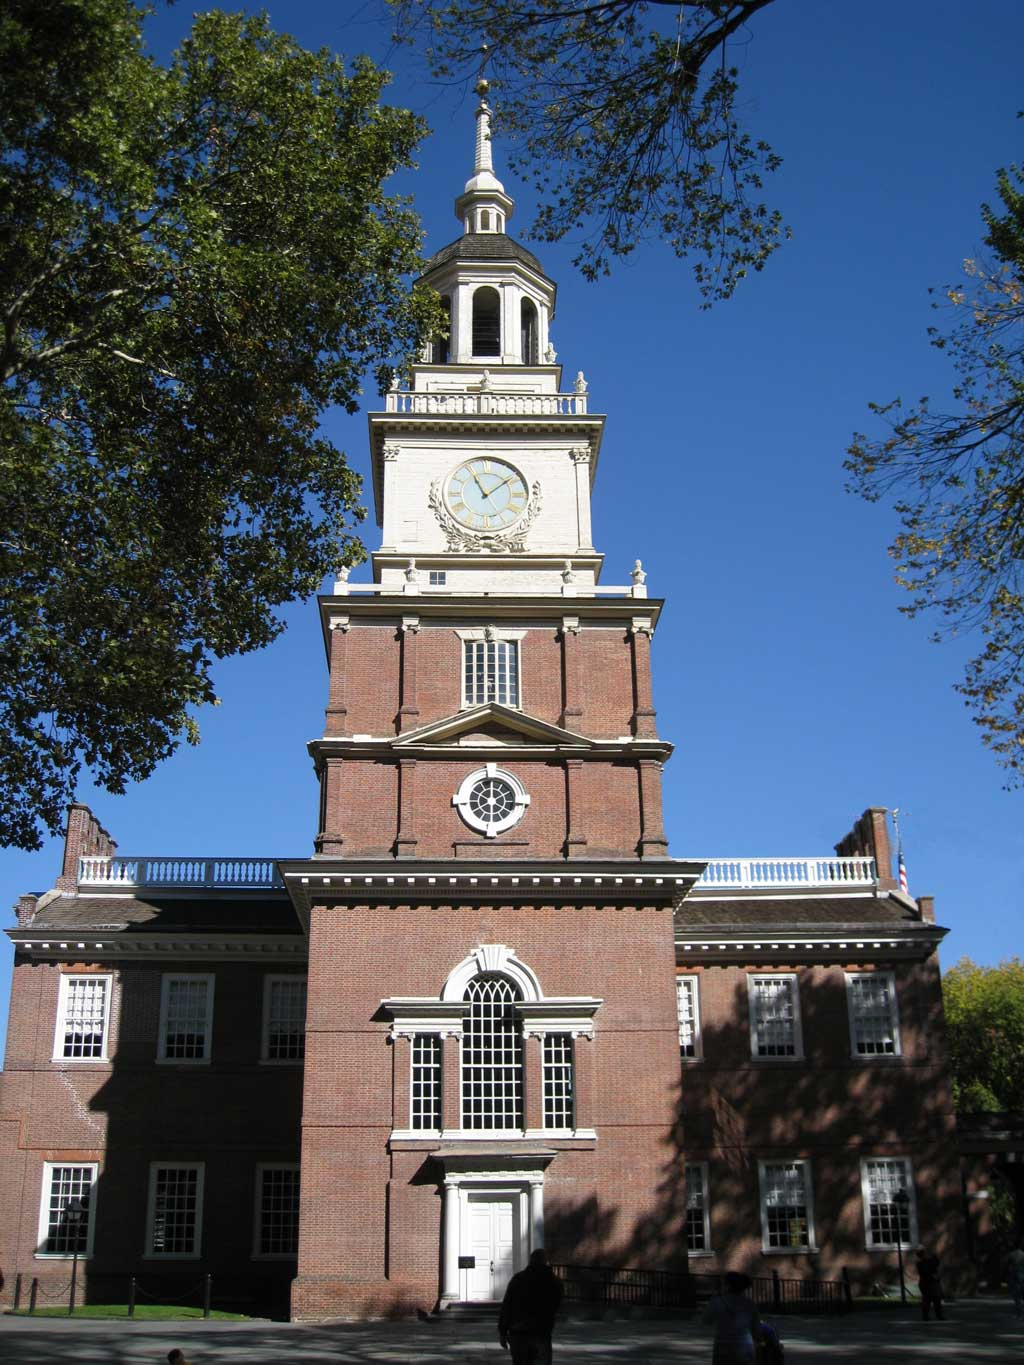 The front of the clock tower at Independence Hall